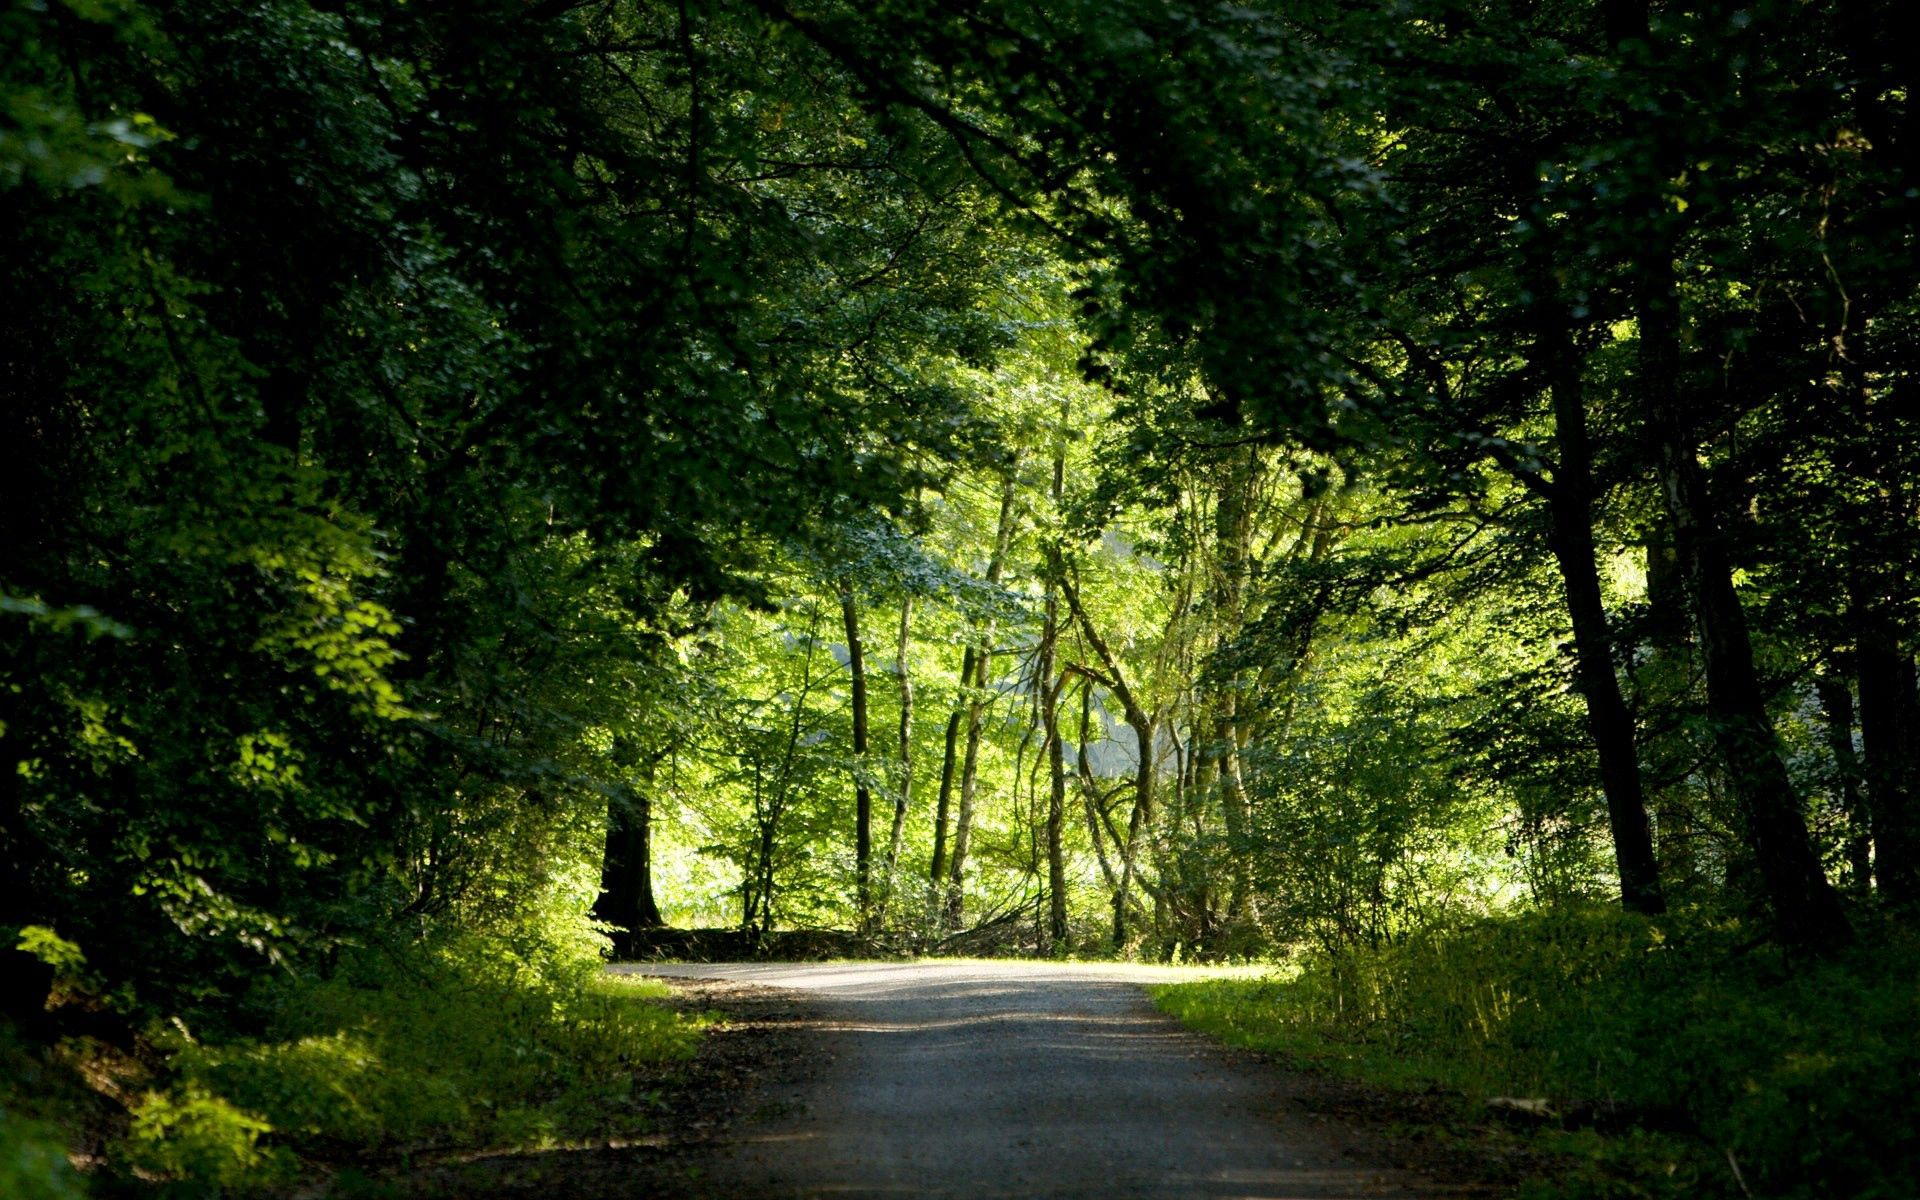 60415 download wallpaper Forest, Nature, Trees, Summer, Road, Greens, Crossroads, Crossroad screensavers and pictures for free